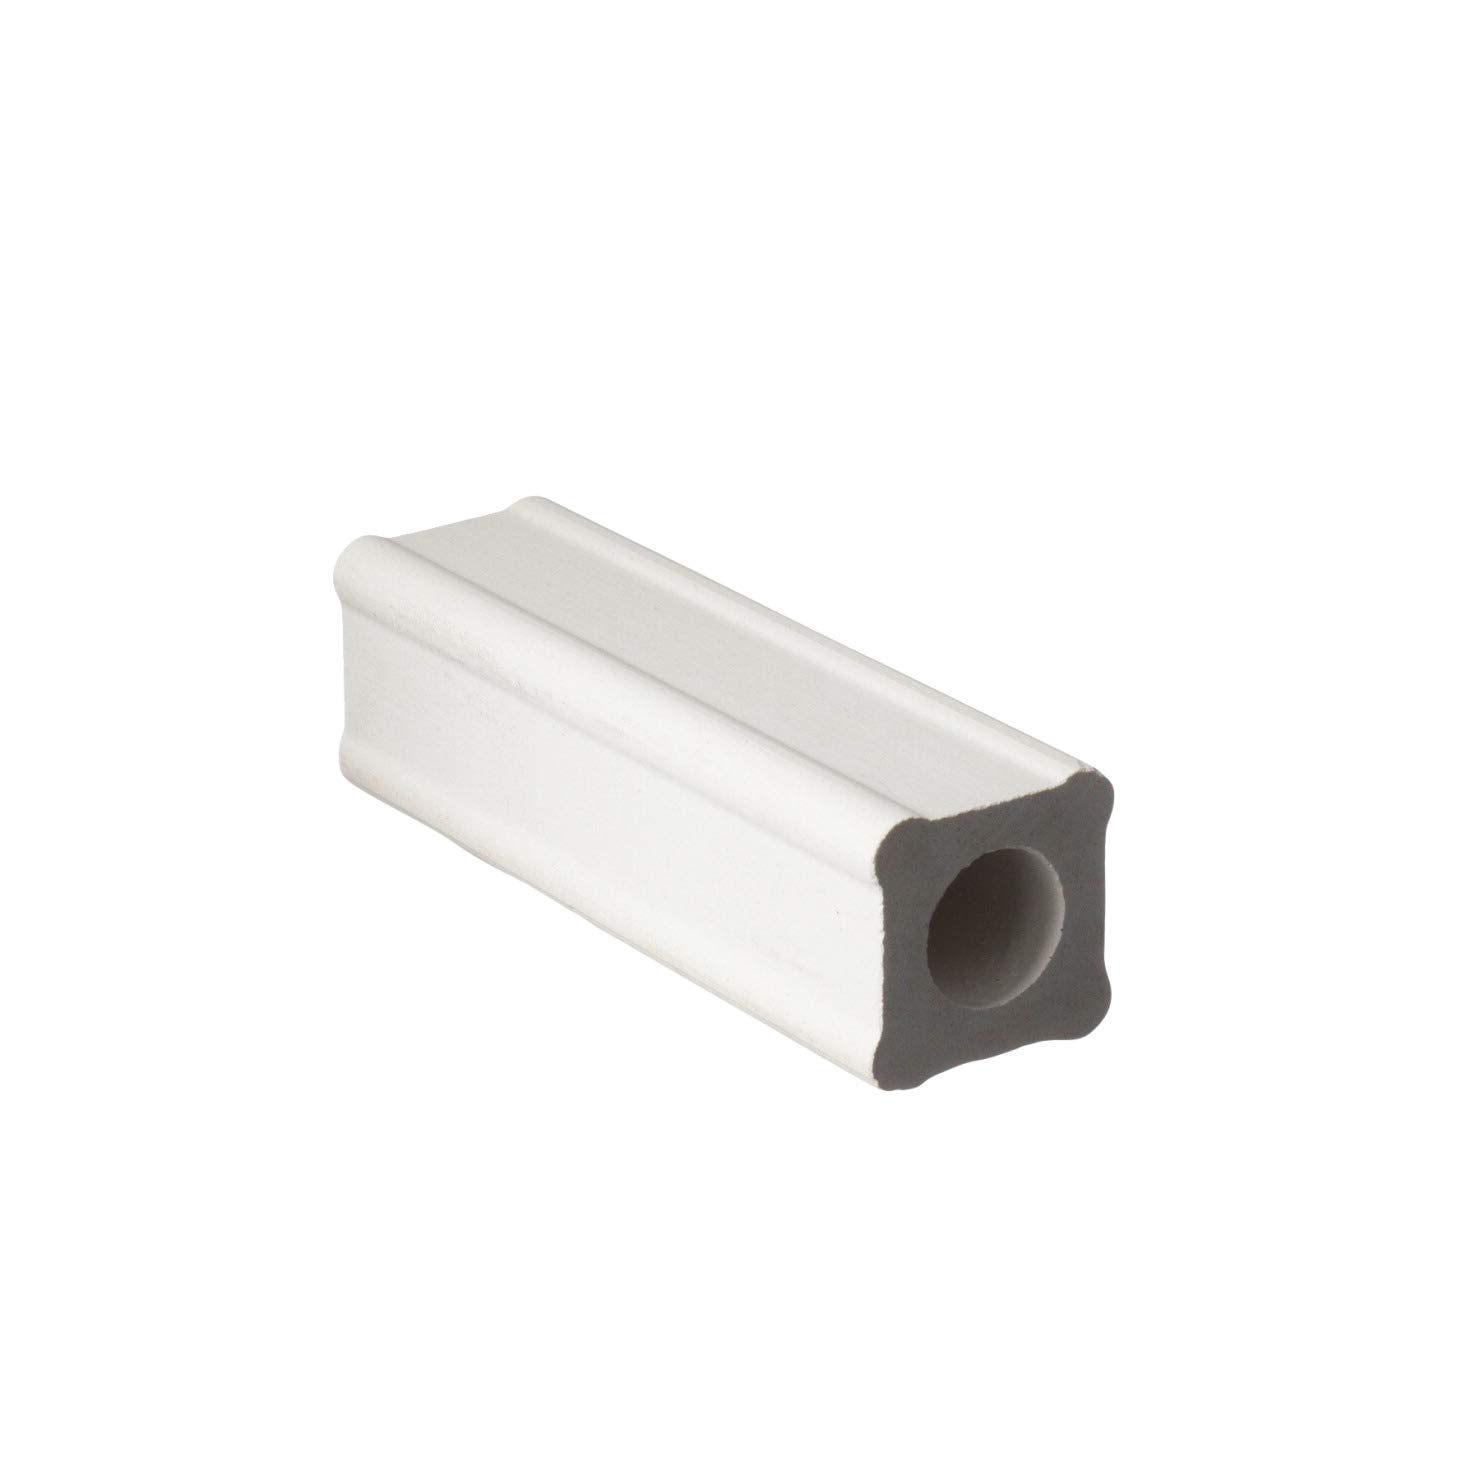 AMACO Durable Strong Shelf Support, 1 X 1 X 4 in, White, Pack of 12 by AMACO